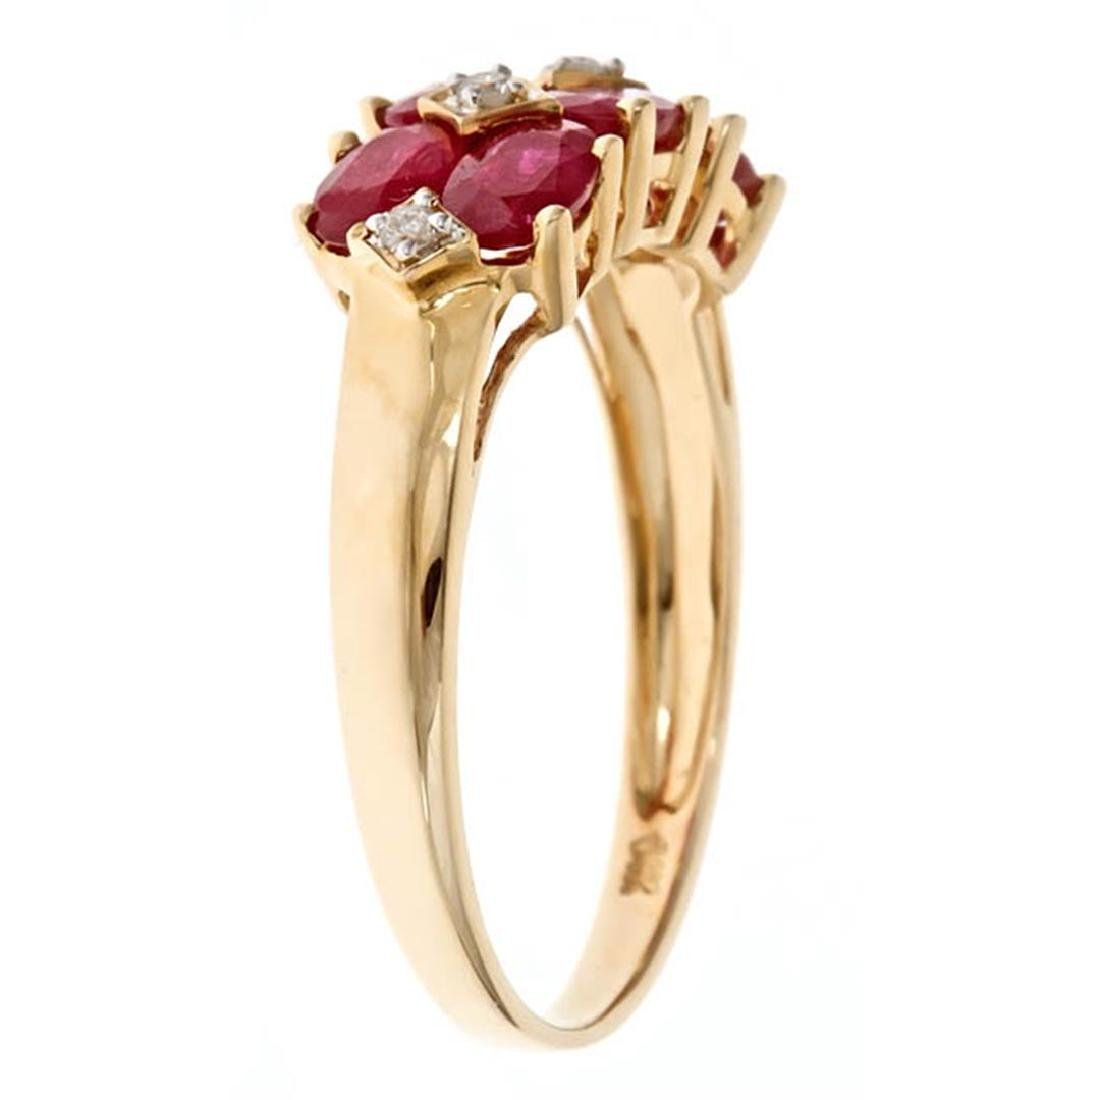 2.09 ctw Ruby and Diamond Ring - 14KT Yellow Gold - 2